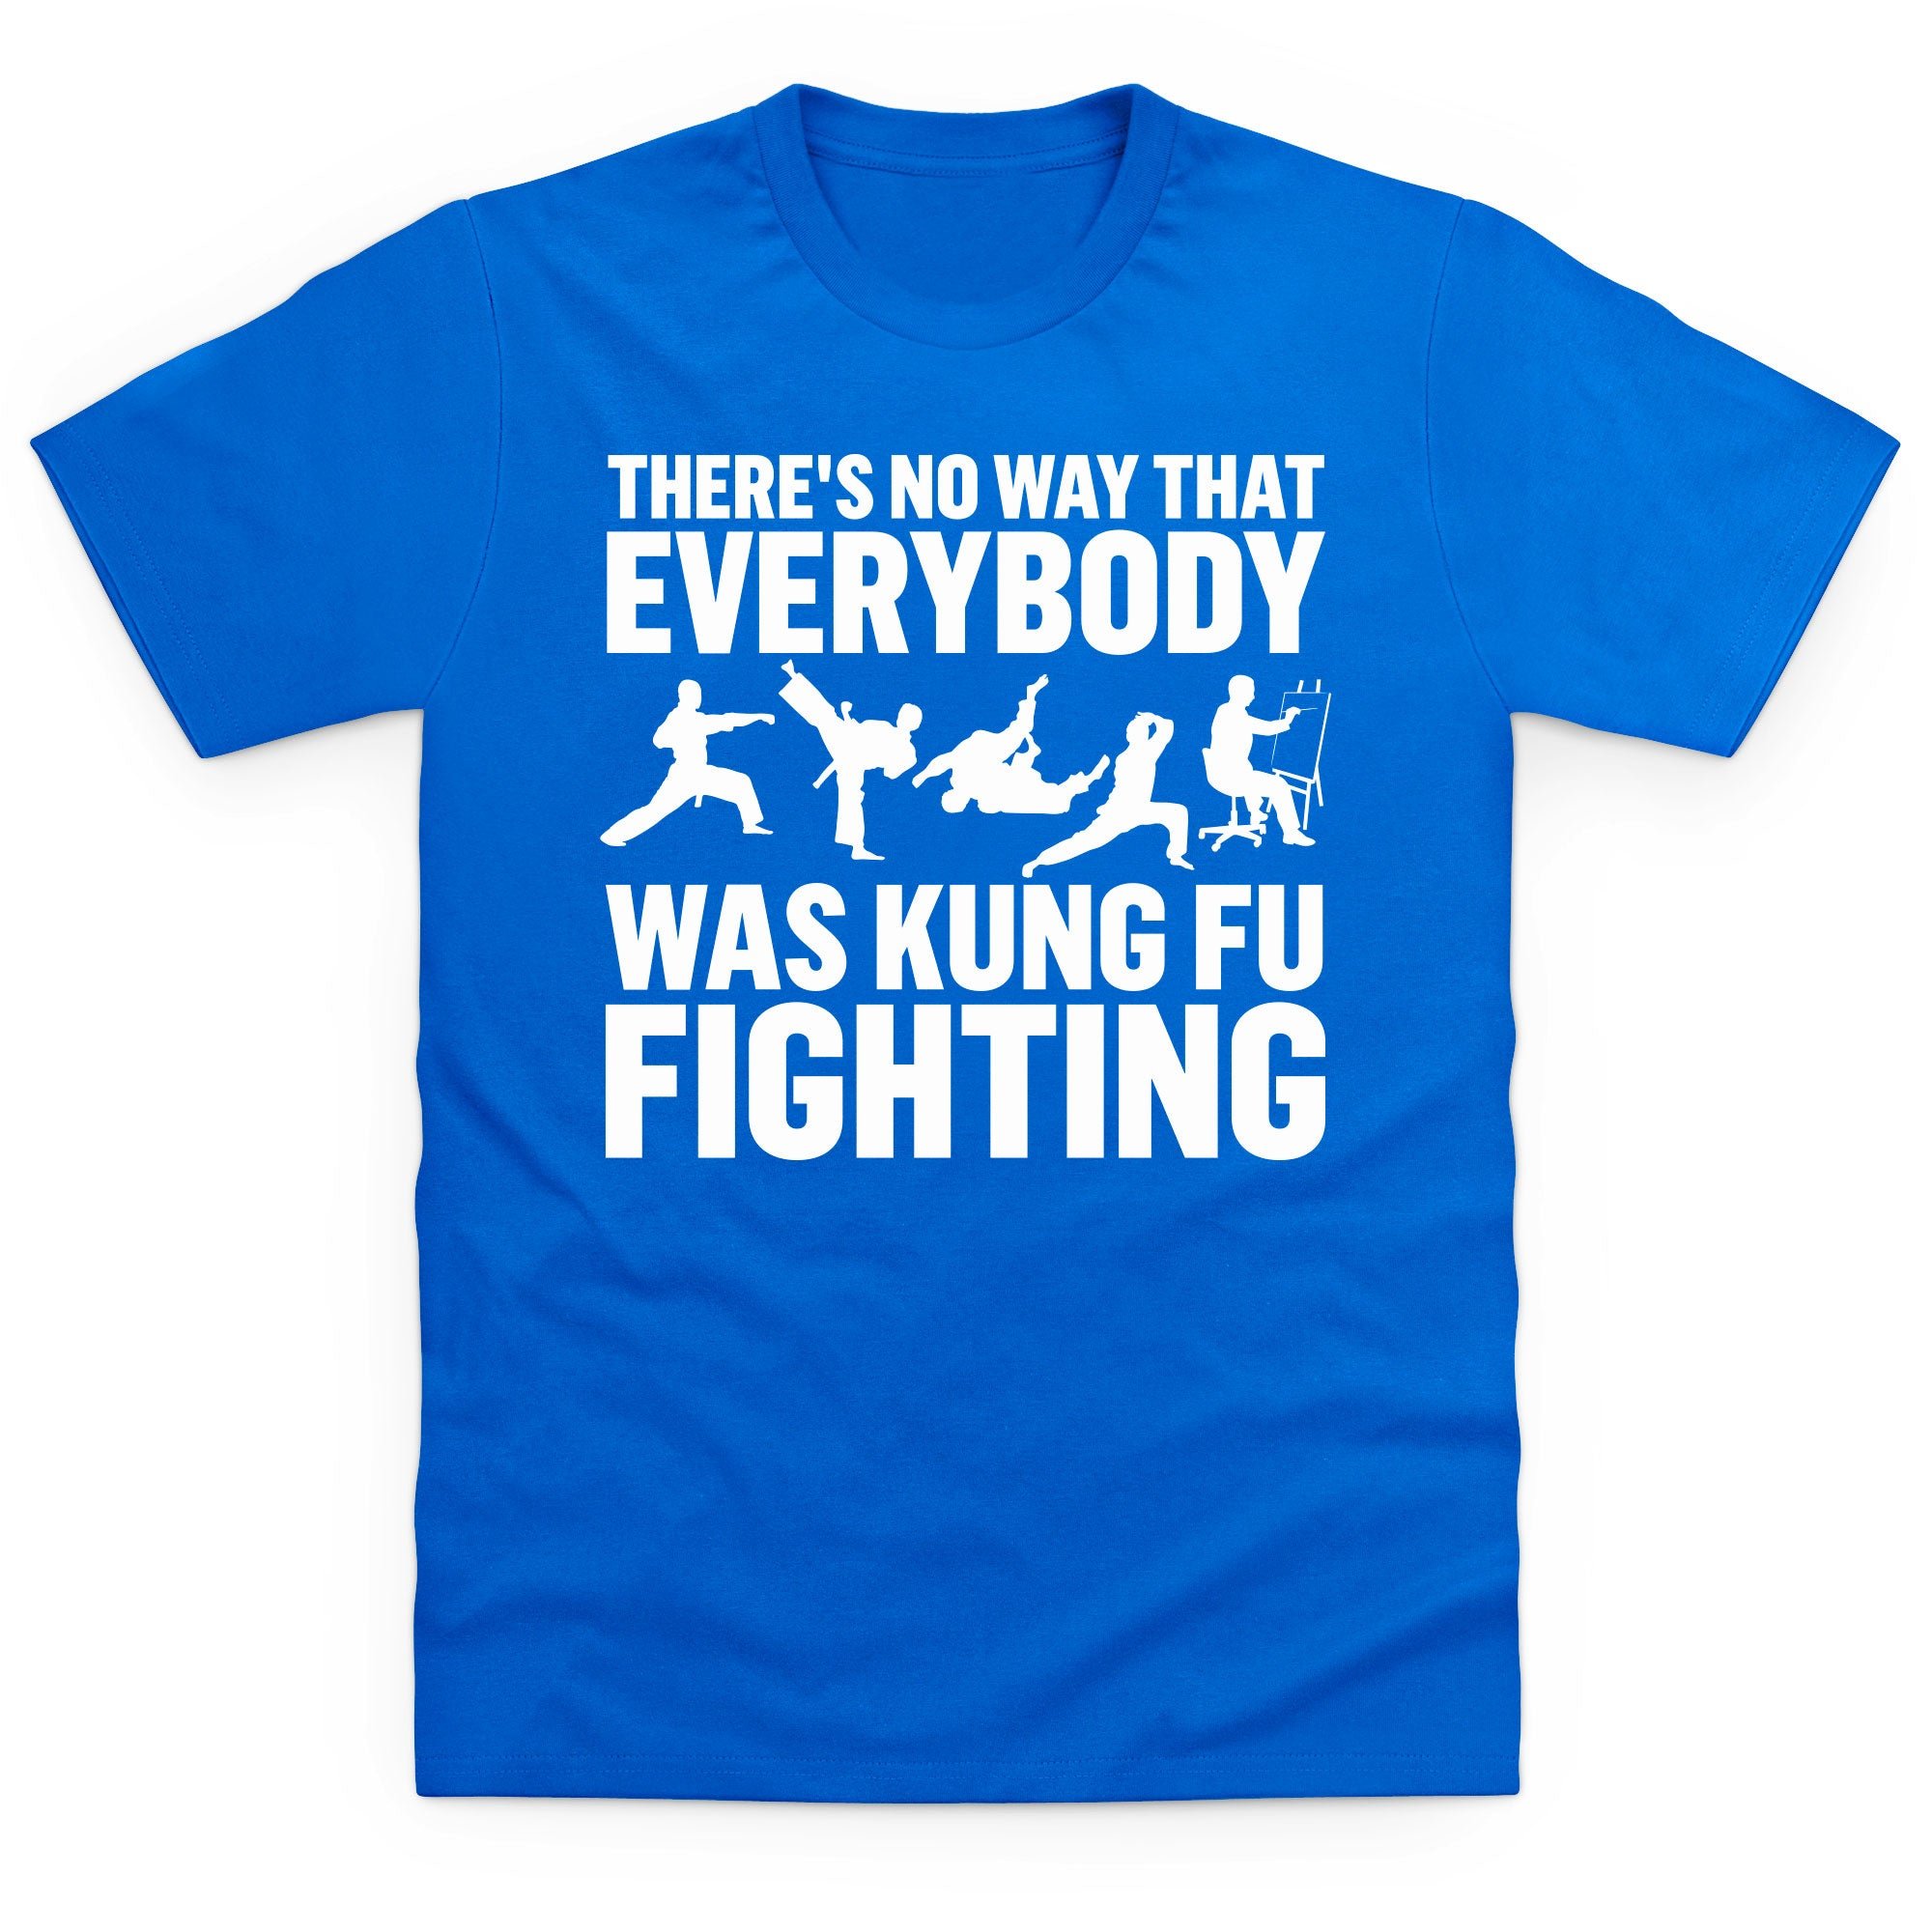 CHEAP Kung Fu Fighting Kid's T Shirt 25897396459 – Clothing Accessories